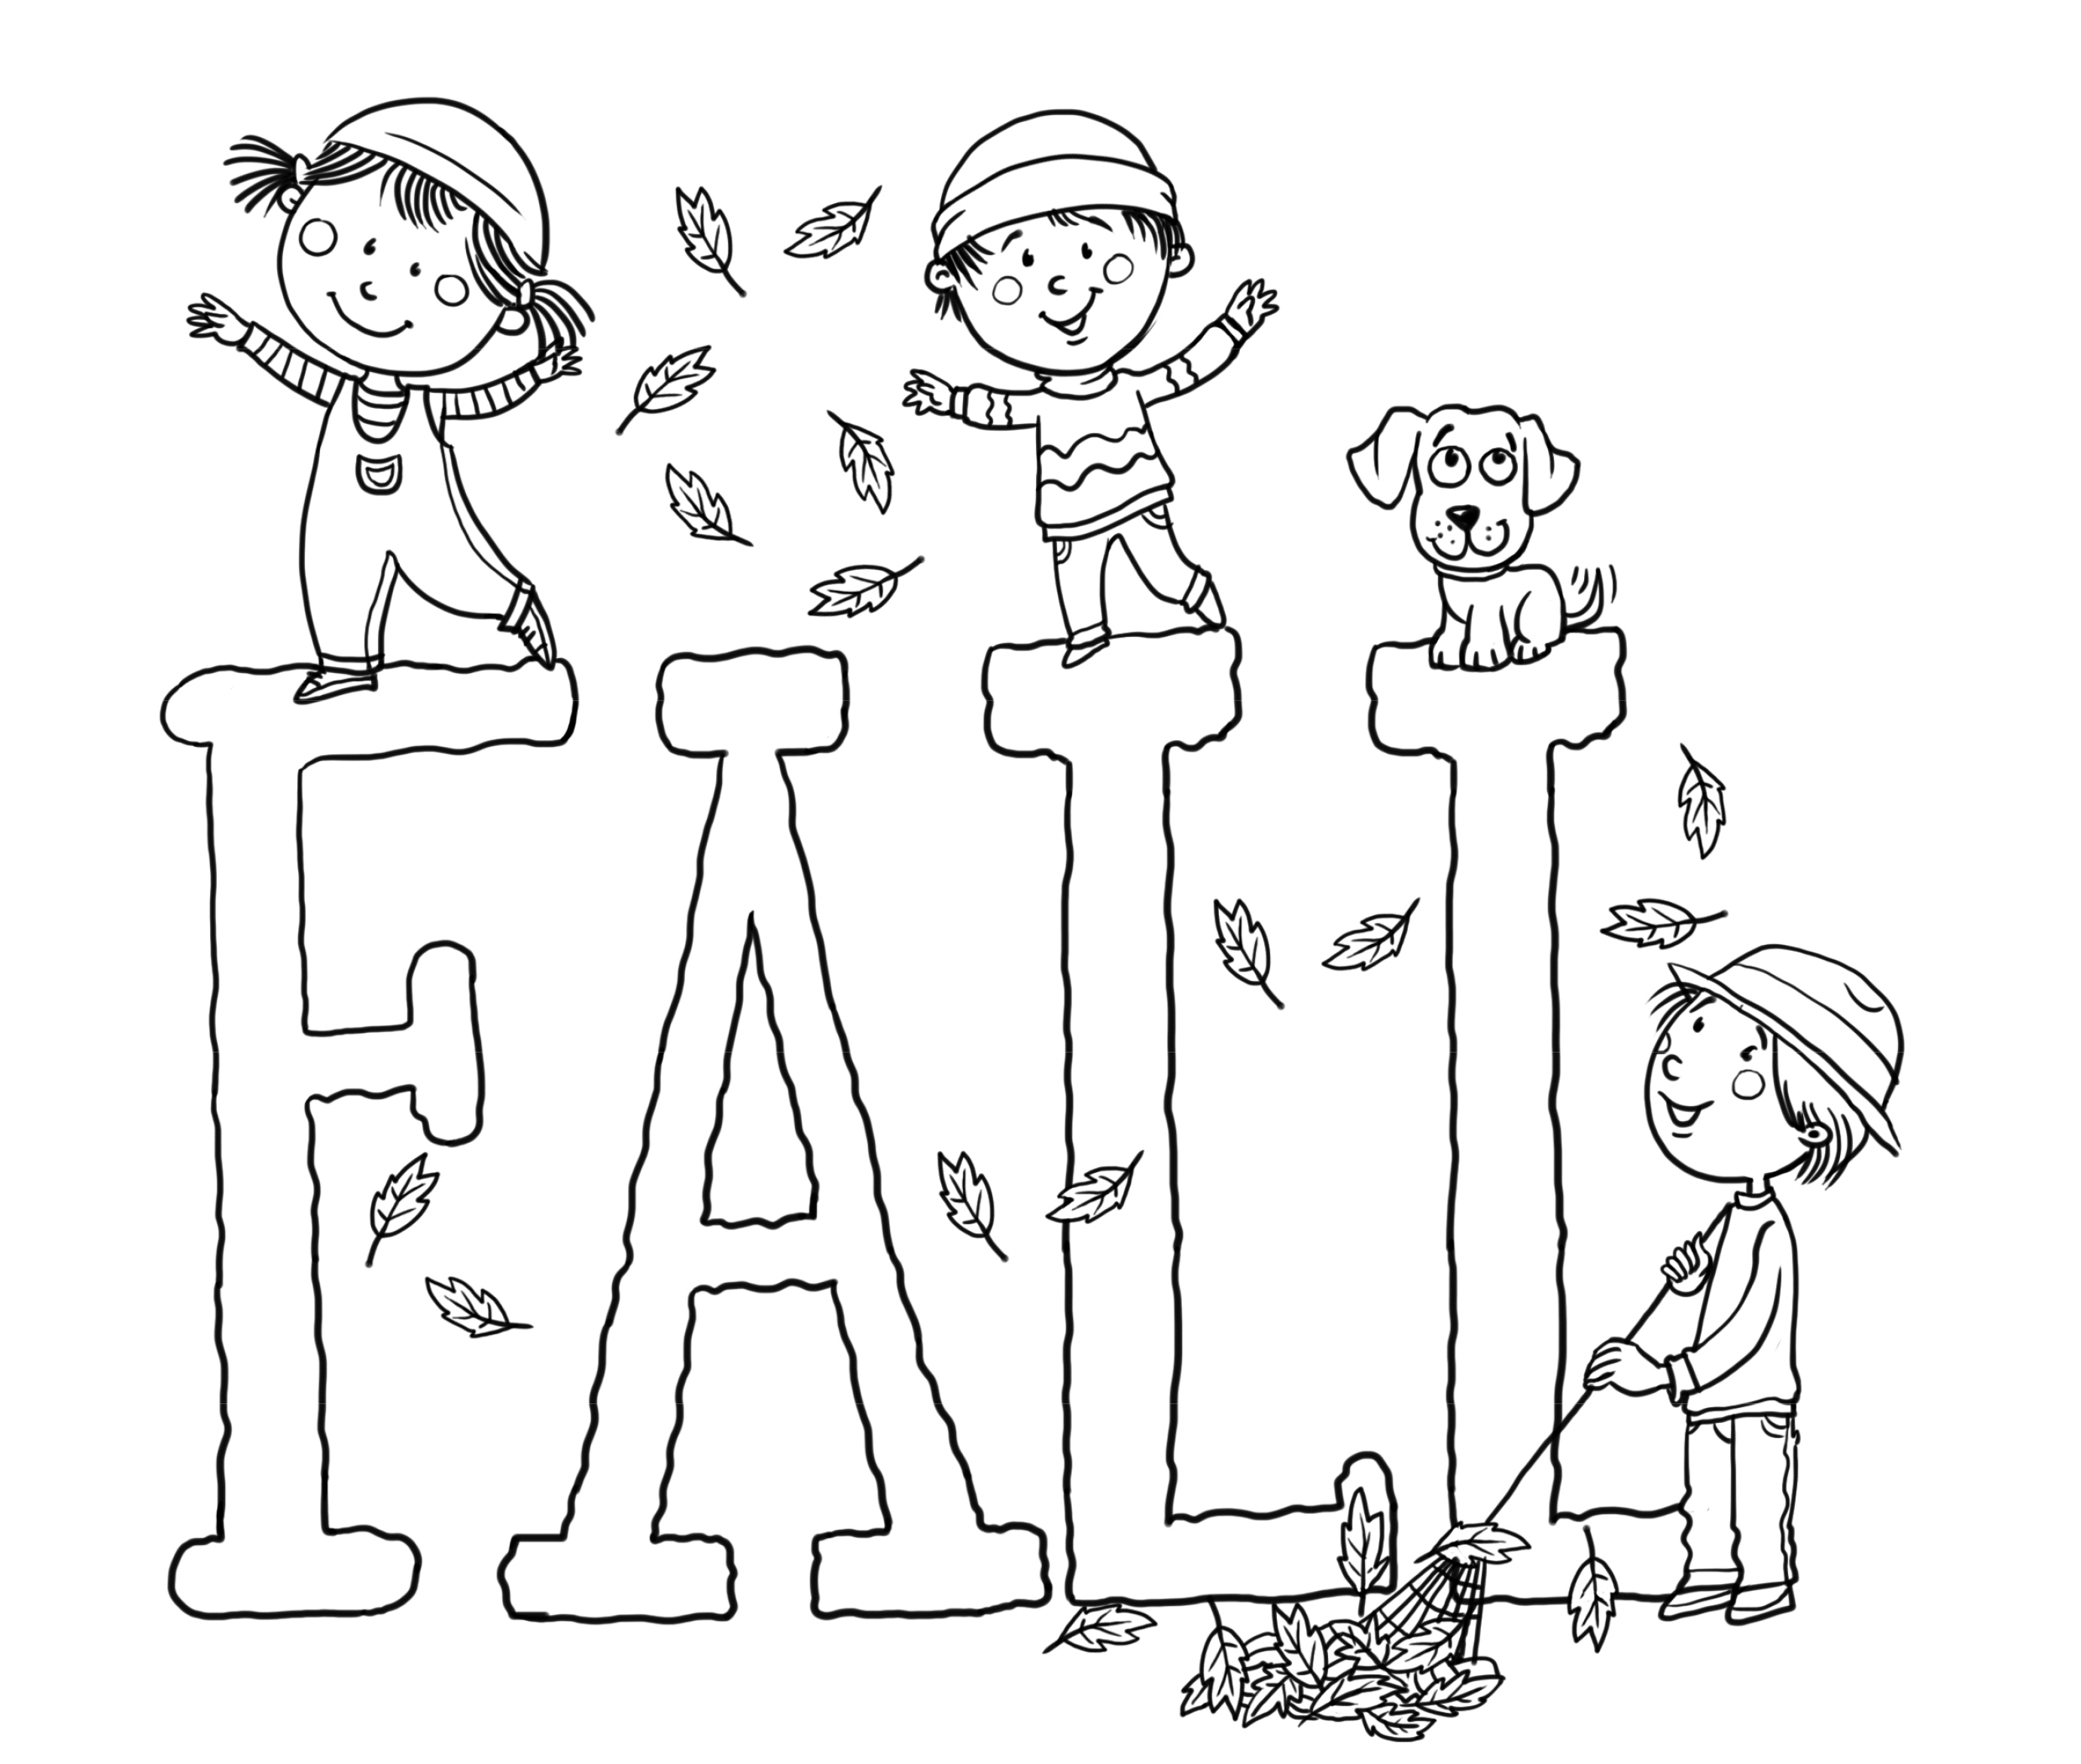 coloring pictures fall fall coloring pages to download and print for free pictures coloring fall